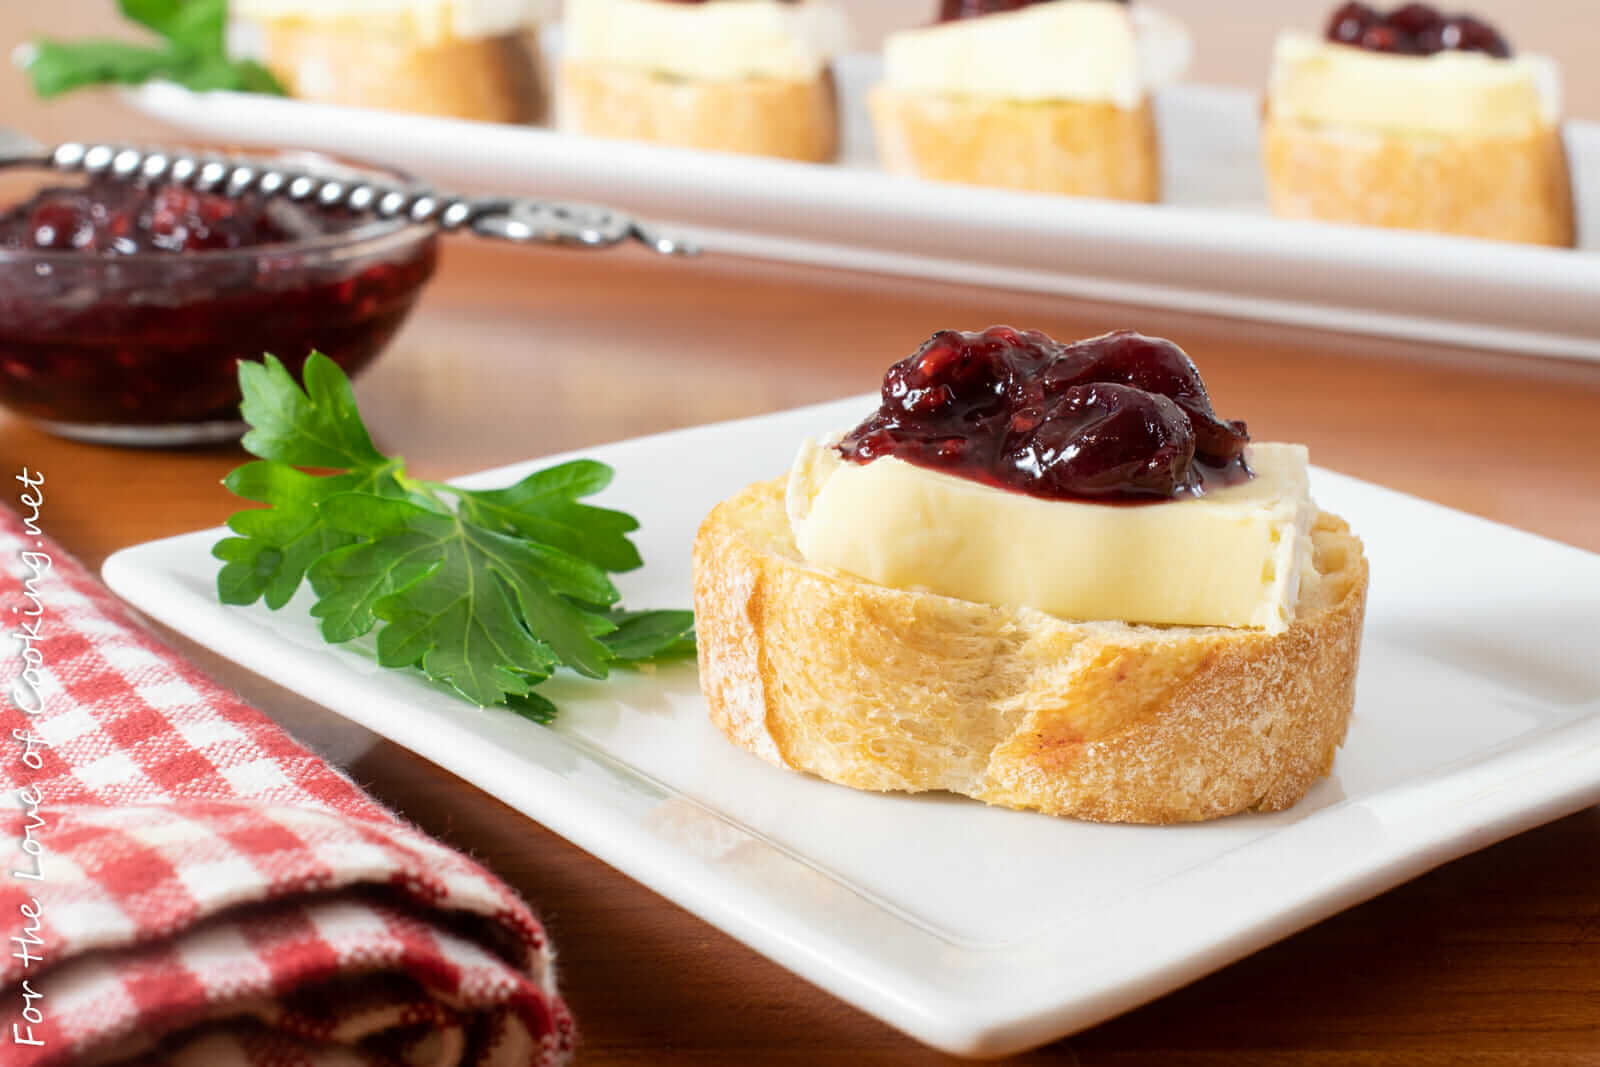 Cranberry-Raspberry Balsamic Compote and Brie Crostini